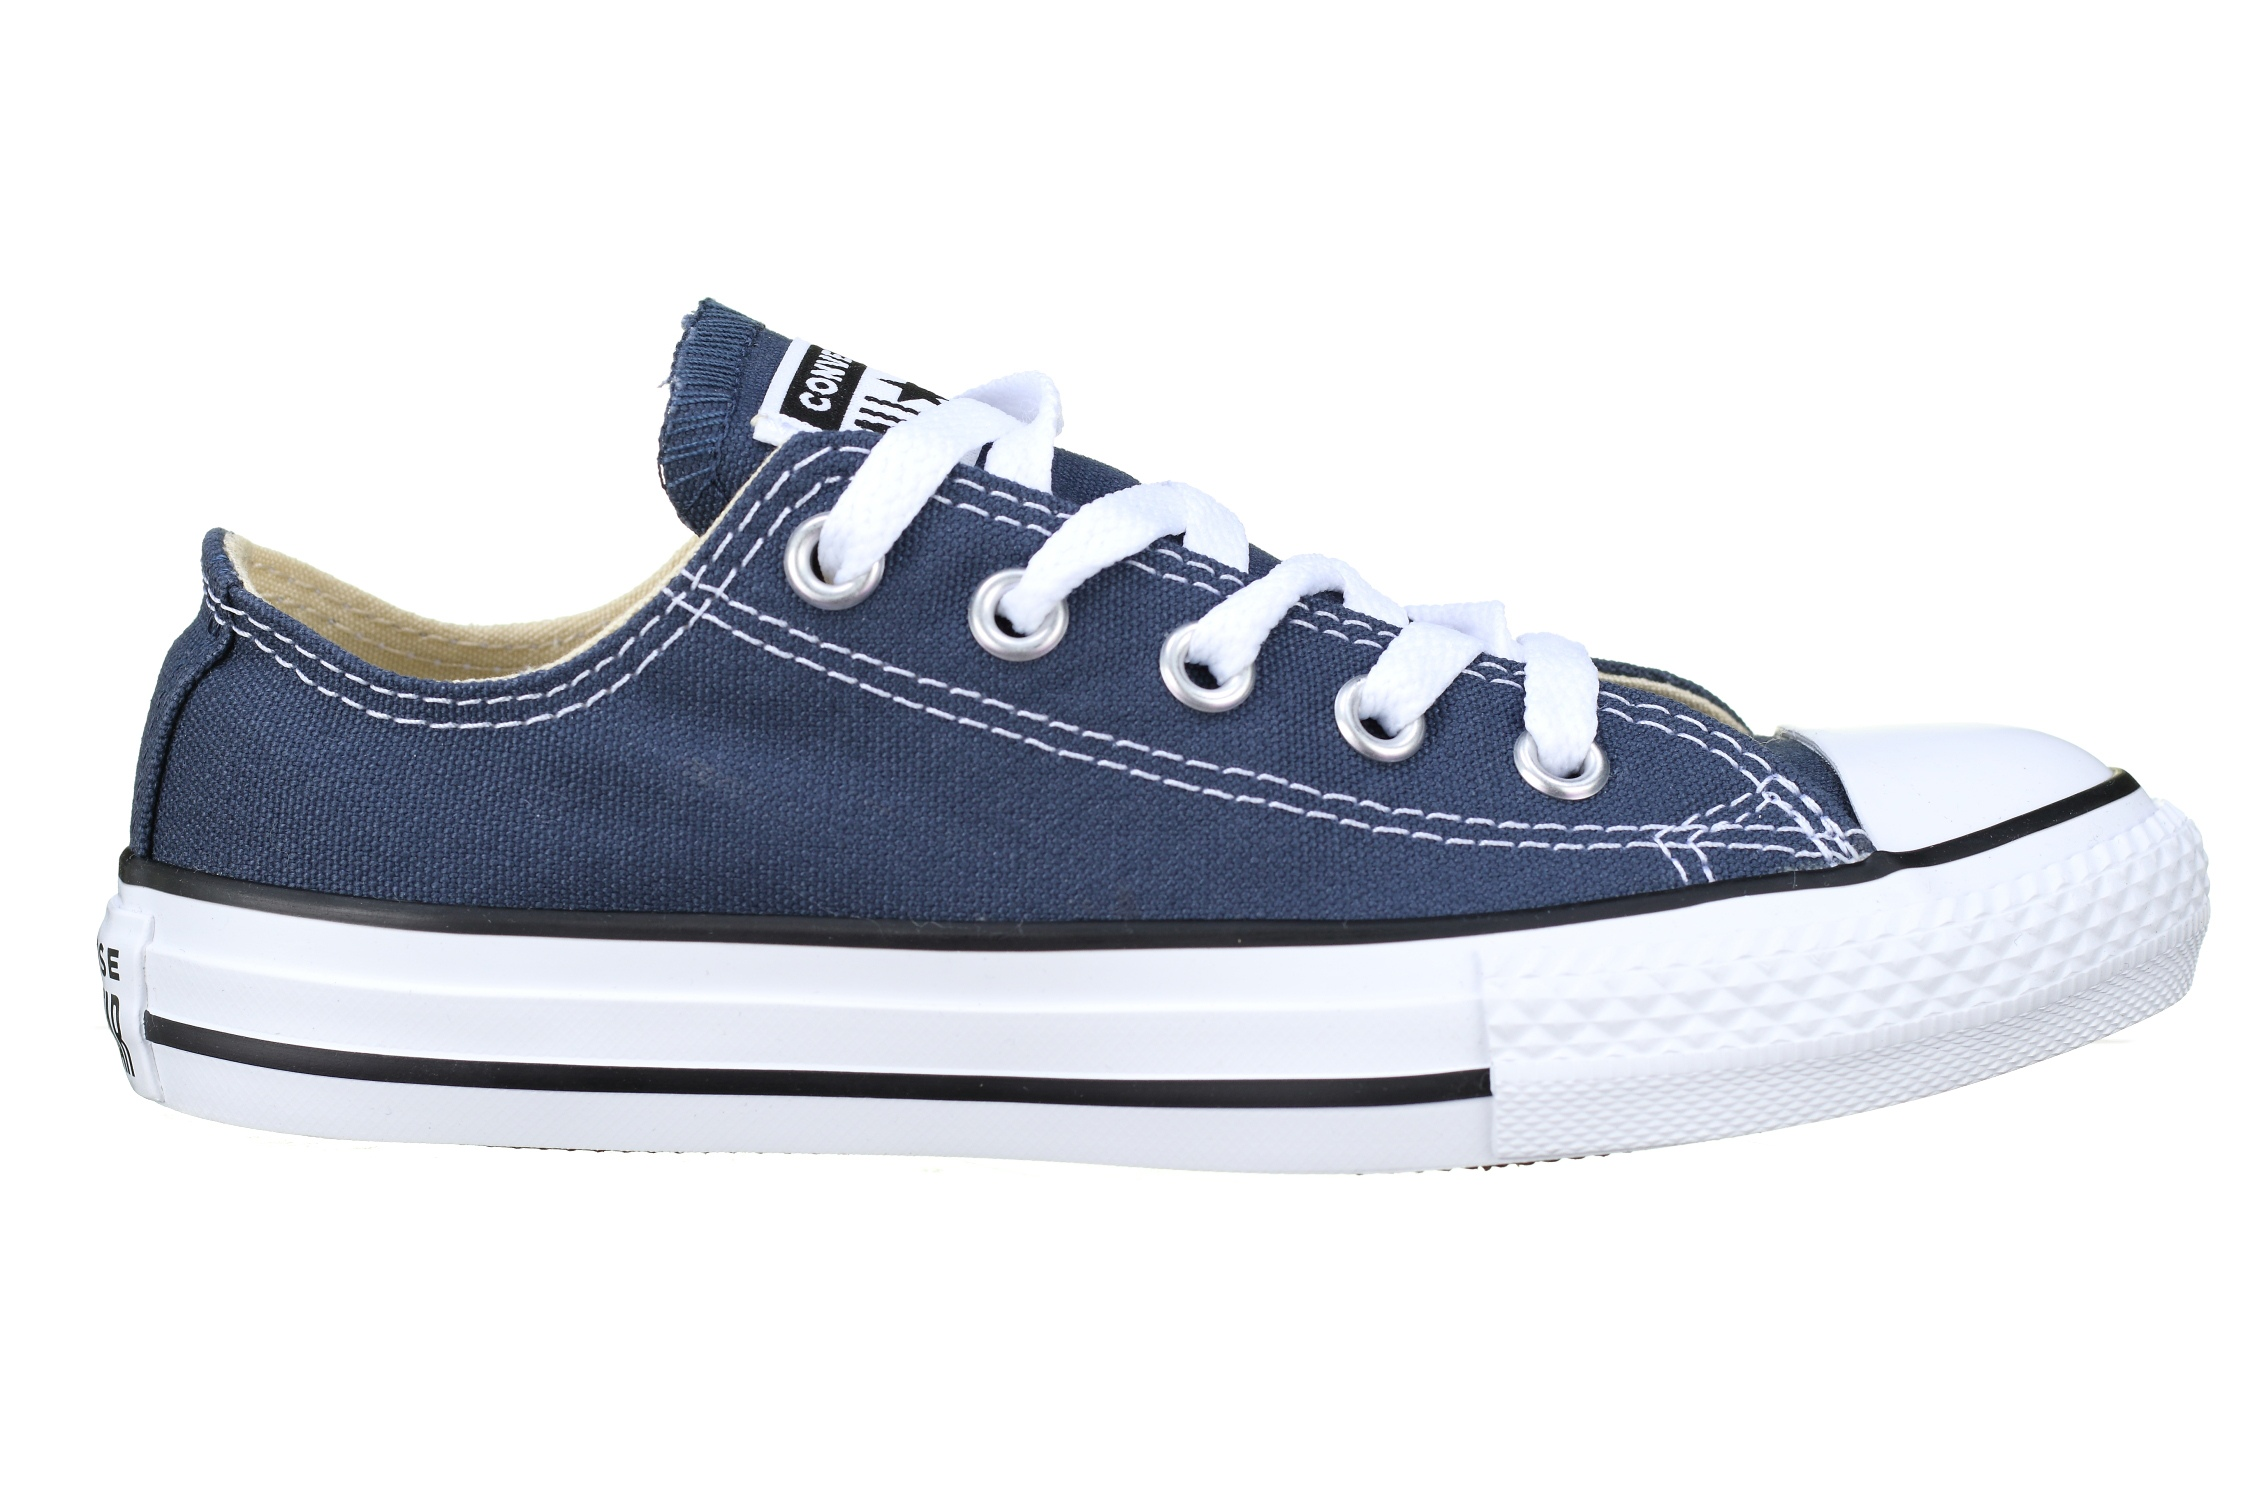 http://www.leadermode.com/181390/converse-yths-all-star-ox-3j237c-navy.jpg